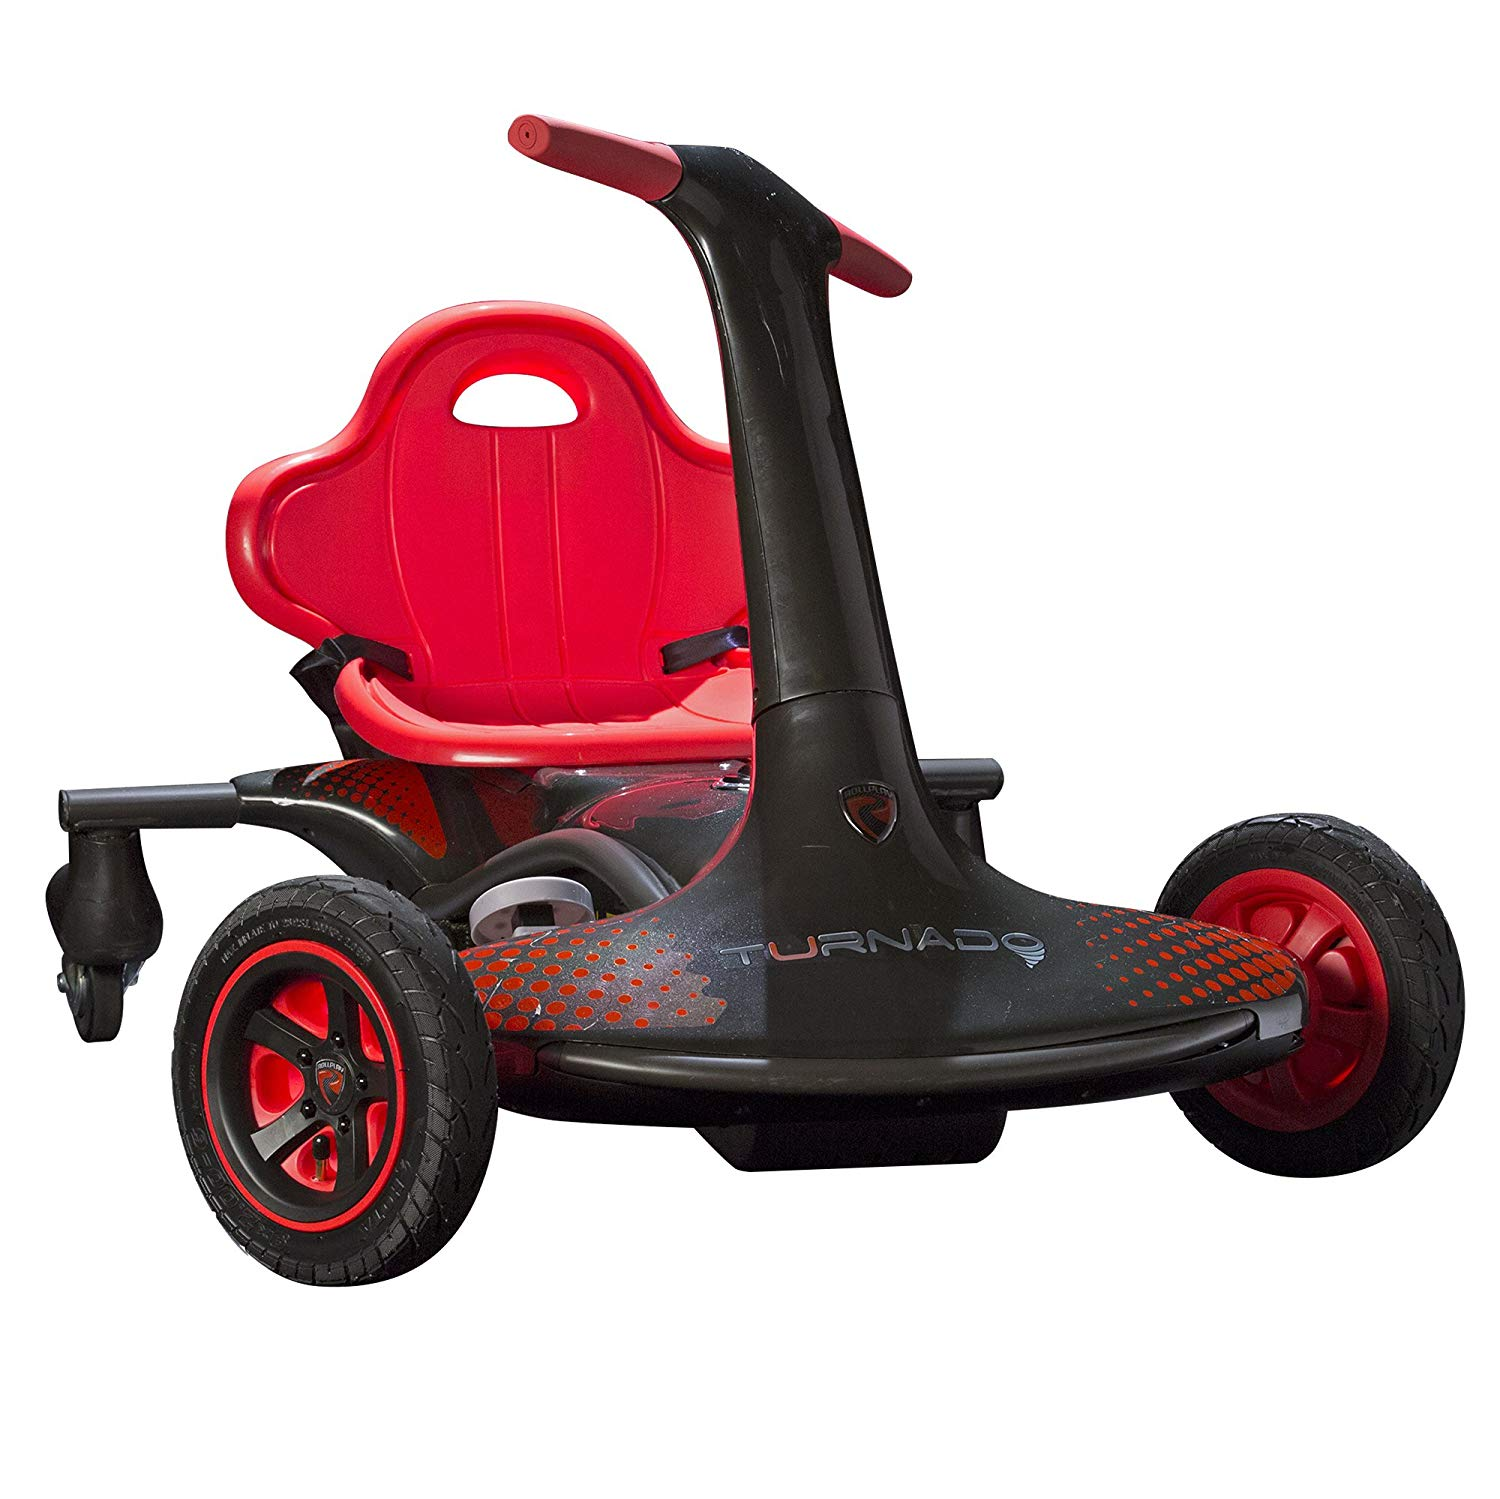 Battery Powered Ride On toys Lovely Rollplay Turnado 24 Volt Battery Powered Ride On toys